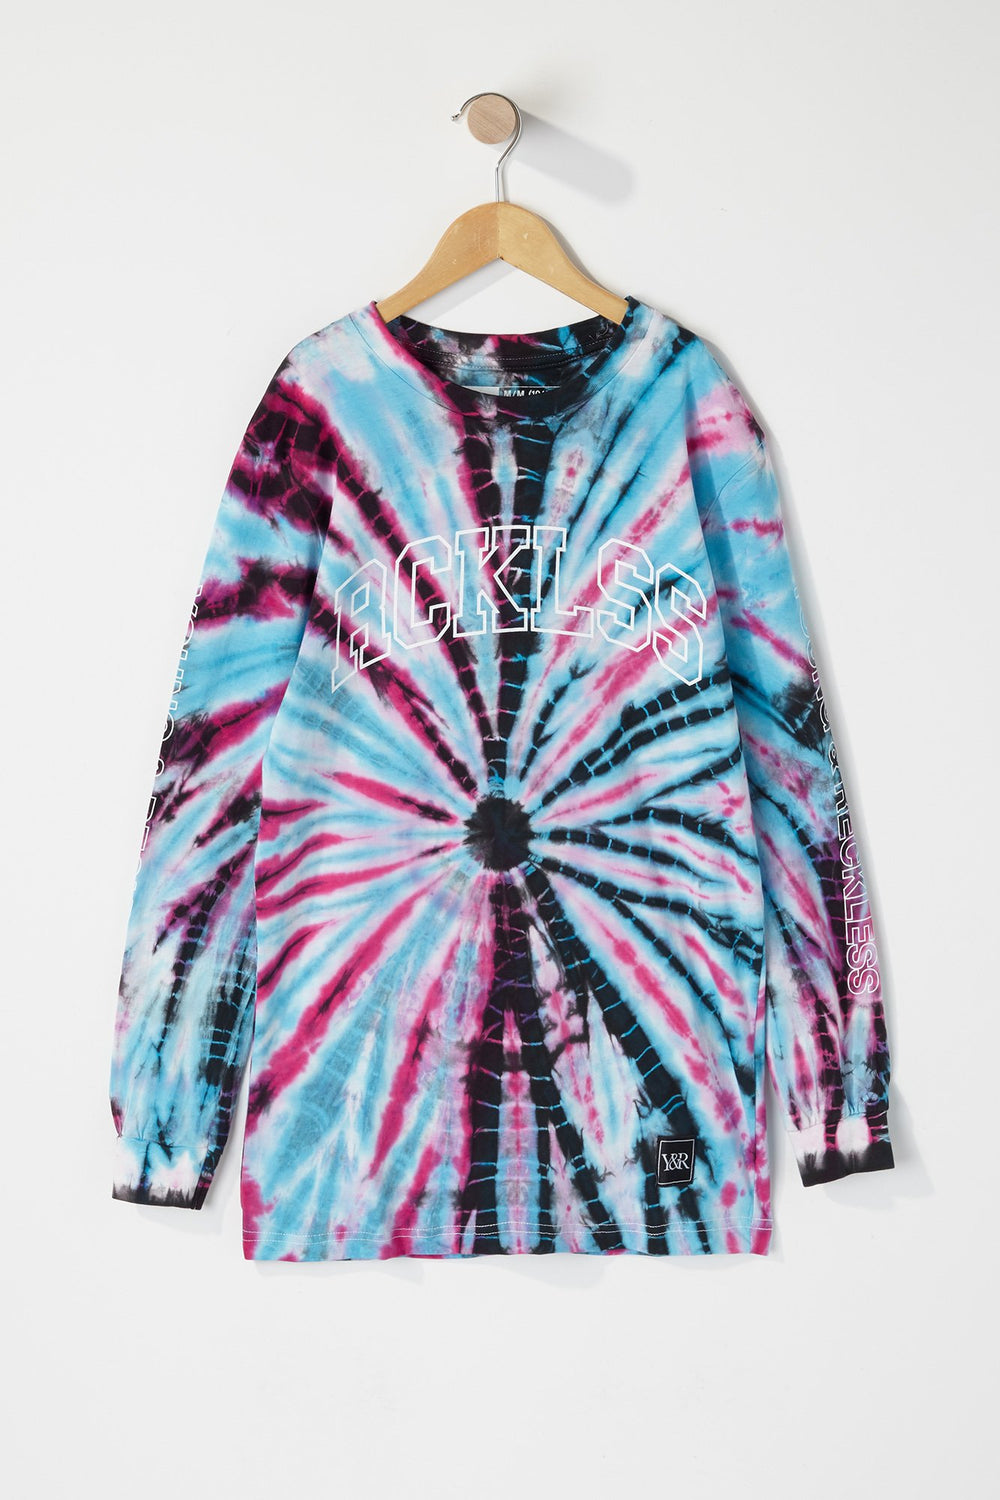 Young & Reckless Boys Tie-Dye Long Sleeve Shirt Purple